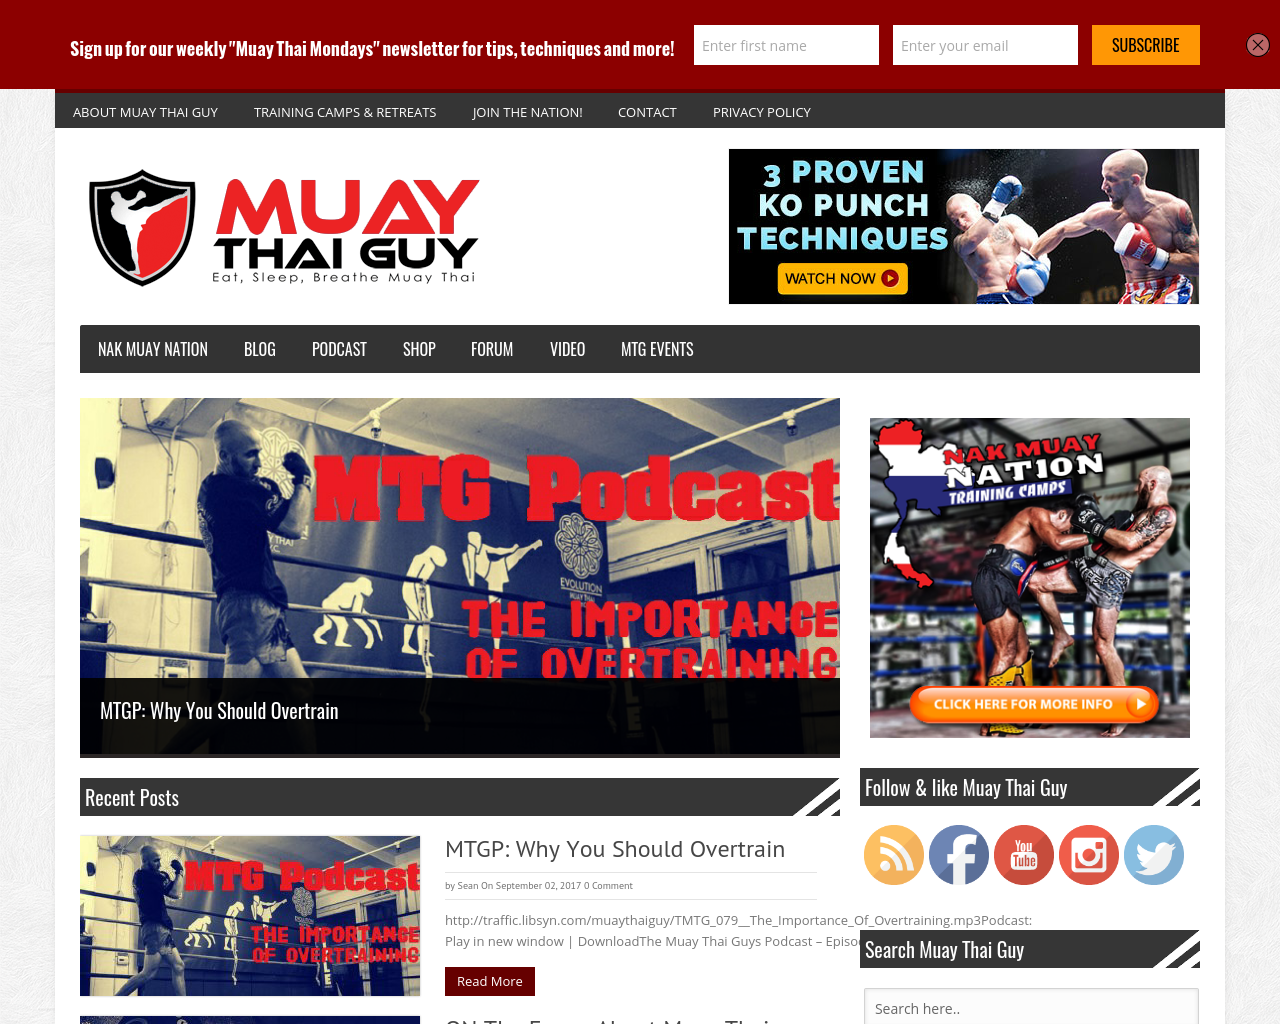 Muay-Thai-Guy-Advertising-Reviews-Pricing